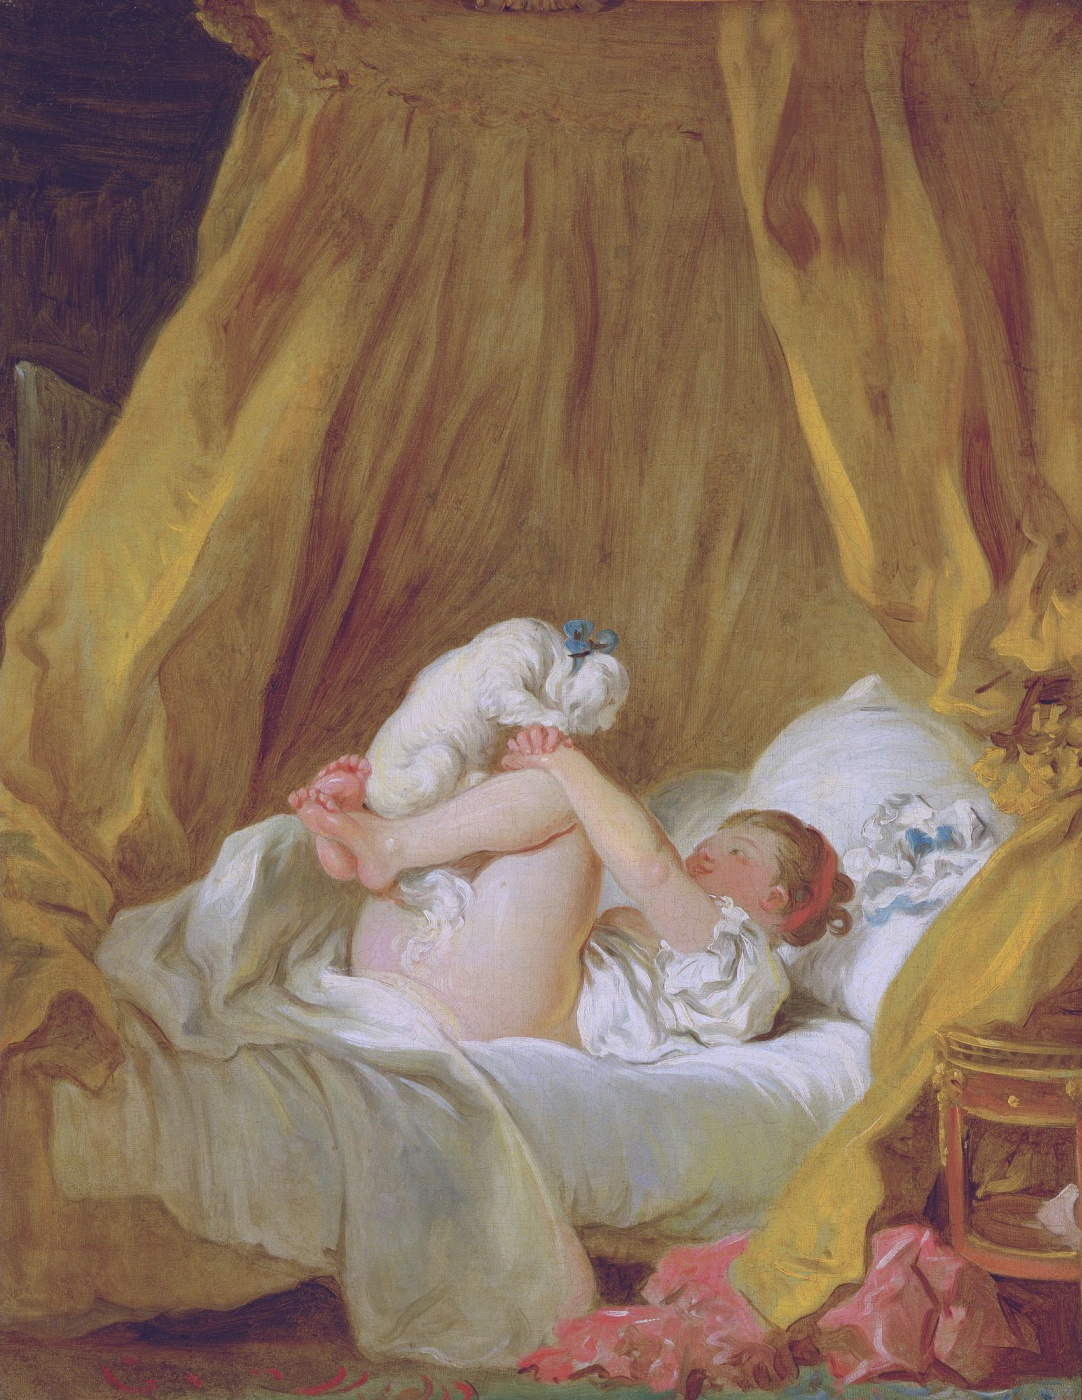 Jean-Honore Fragonard. Girl in bed playing with a dog